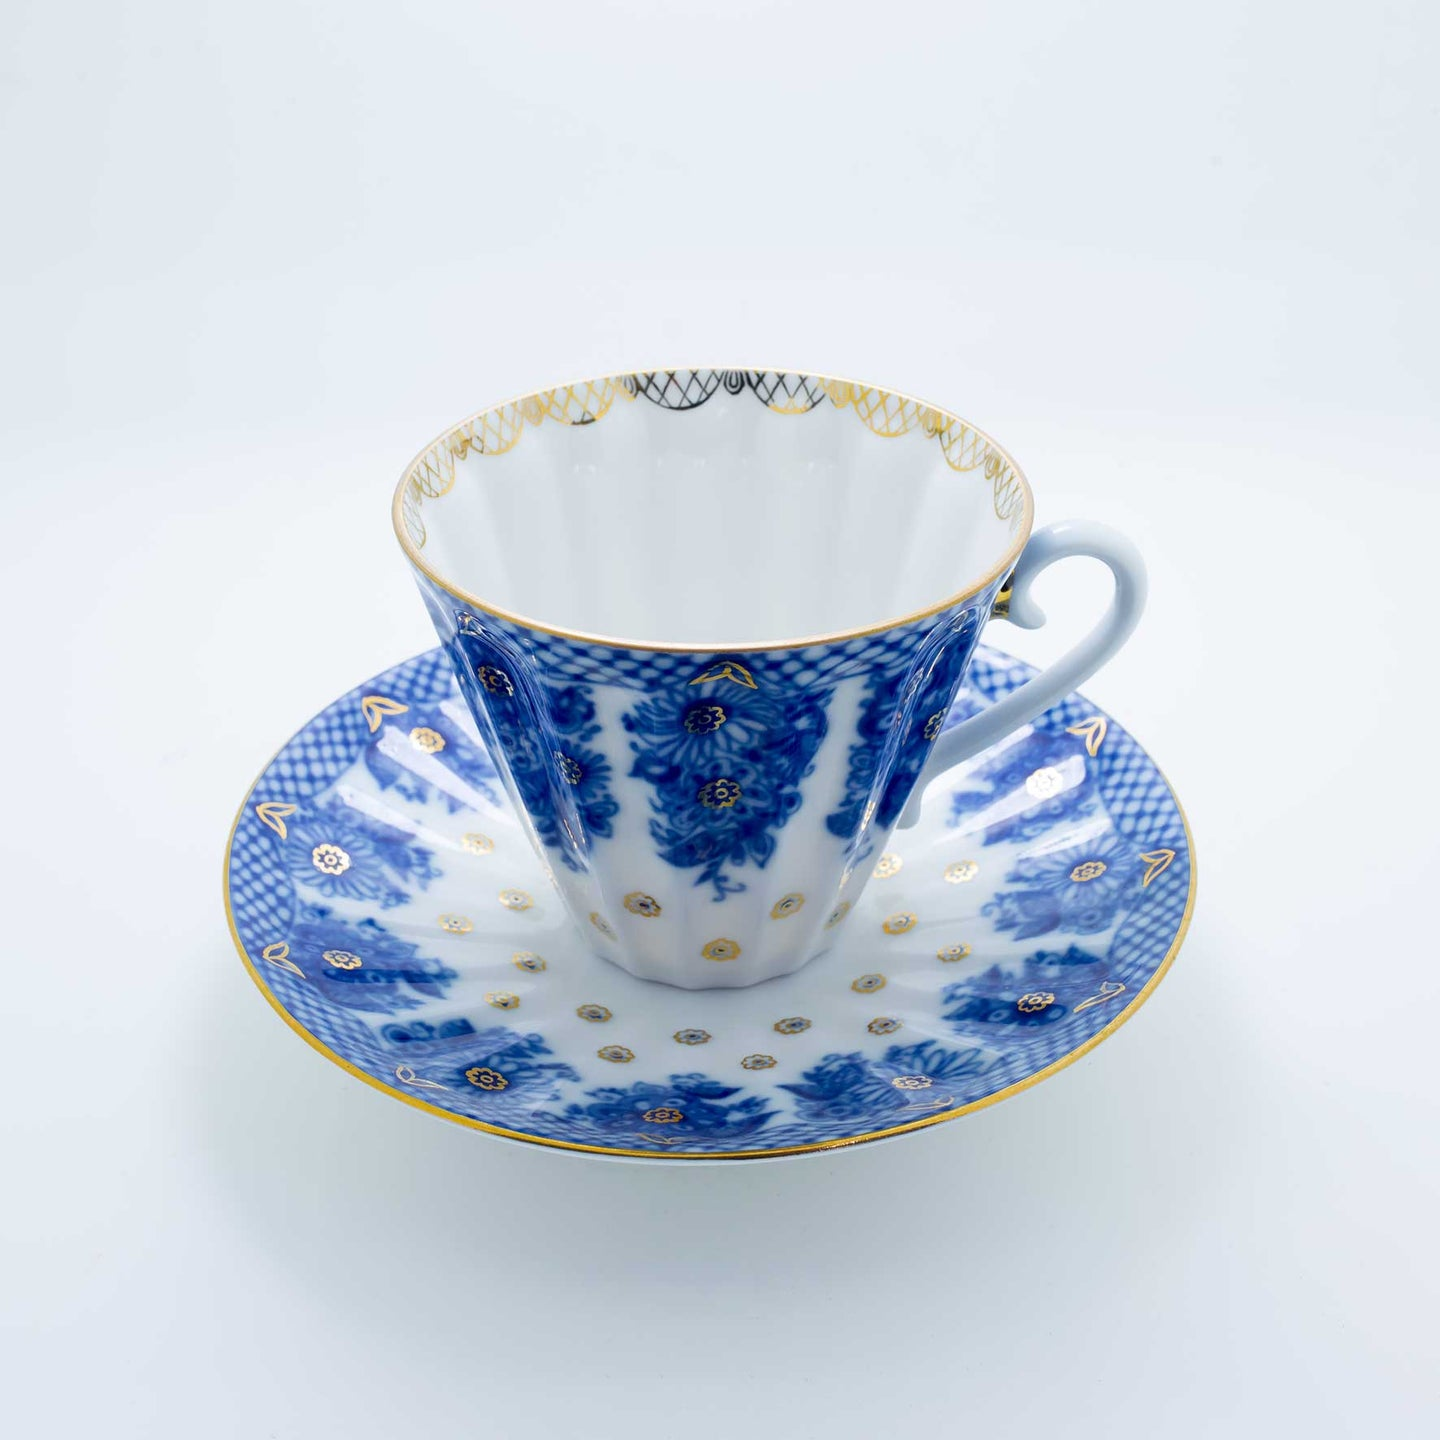 Refresh Moment Imperial Porcelain St. Petersburg 1744 Radial Basket Teacup and Saucer